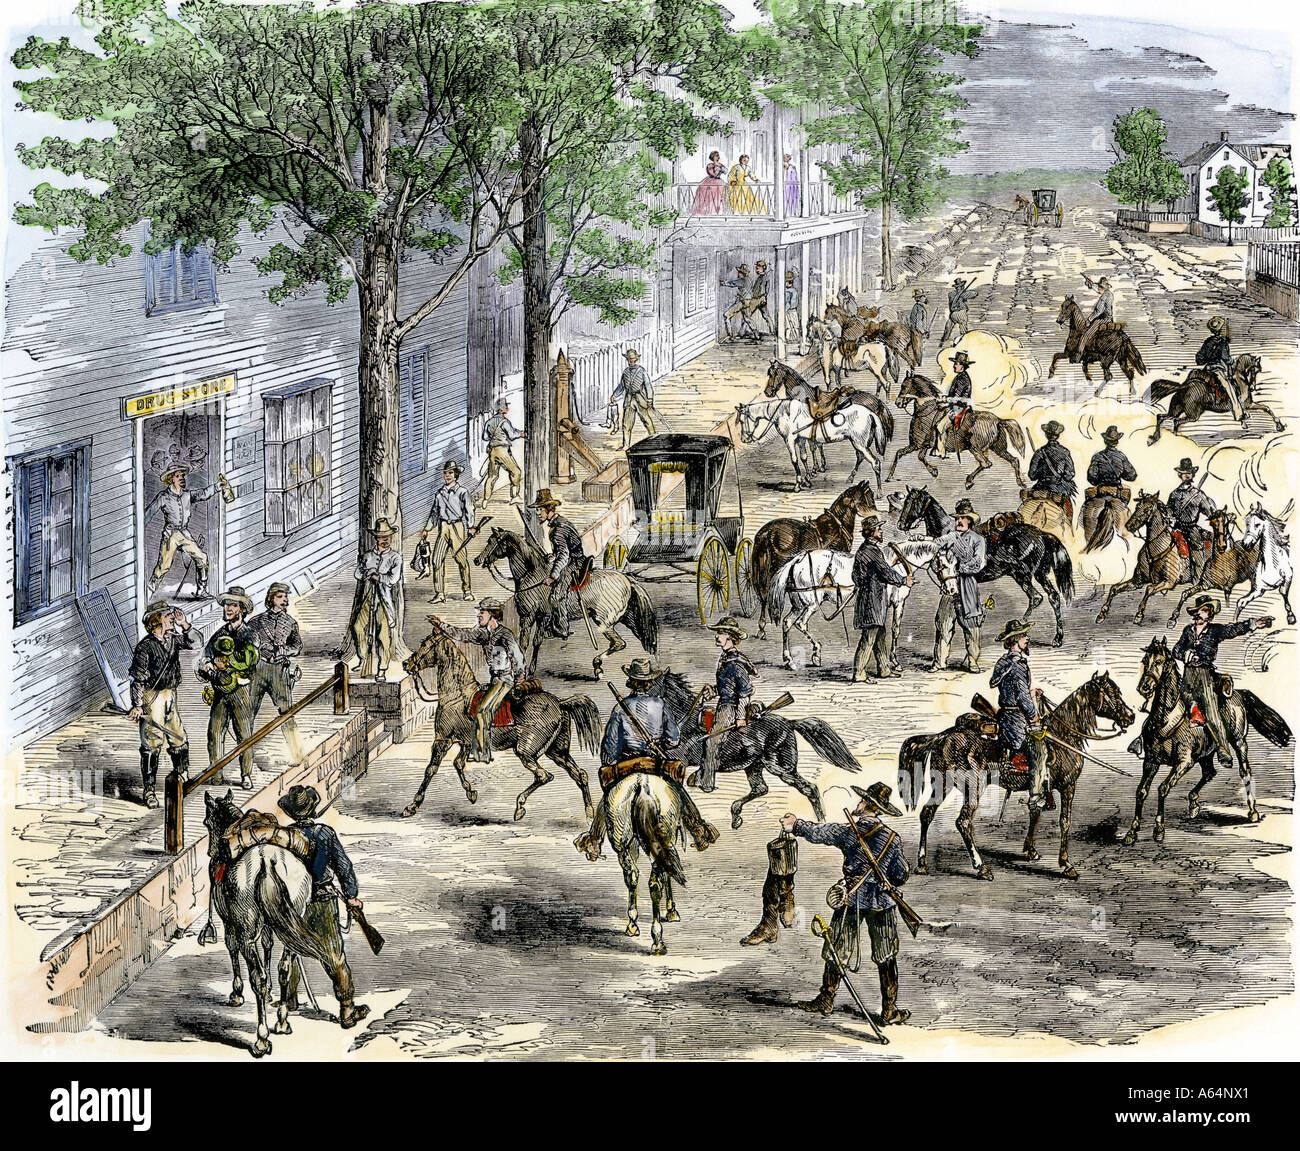 Confederate cavalry ransacking New Windsor Maryland during the US Civil War. Hand-colored woodcut - Stock Image